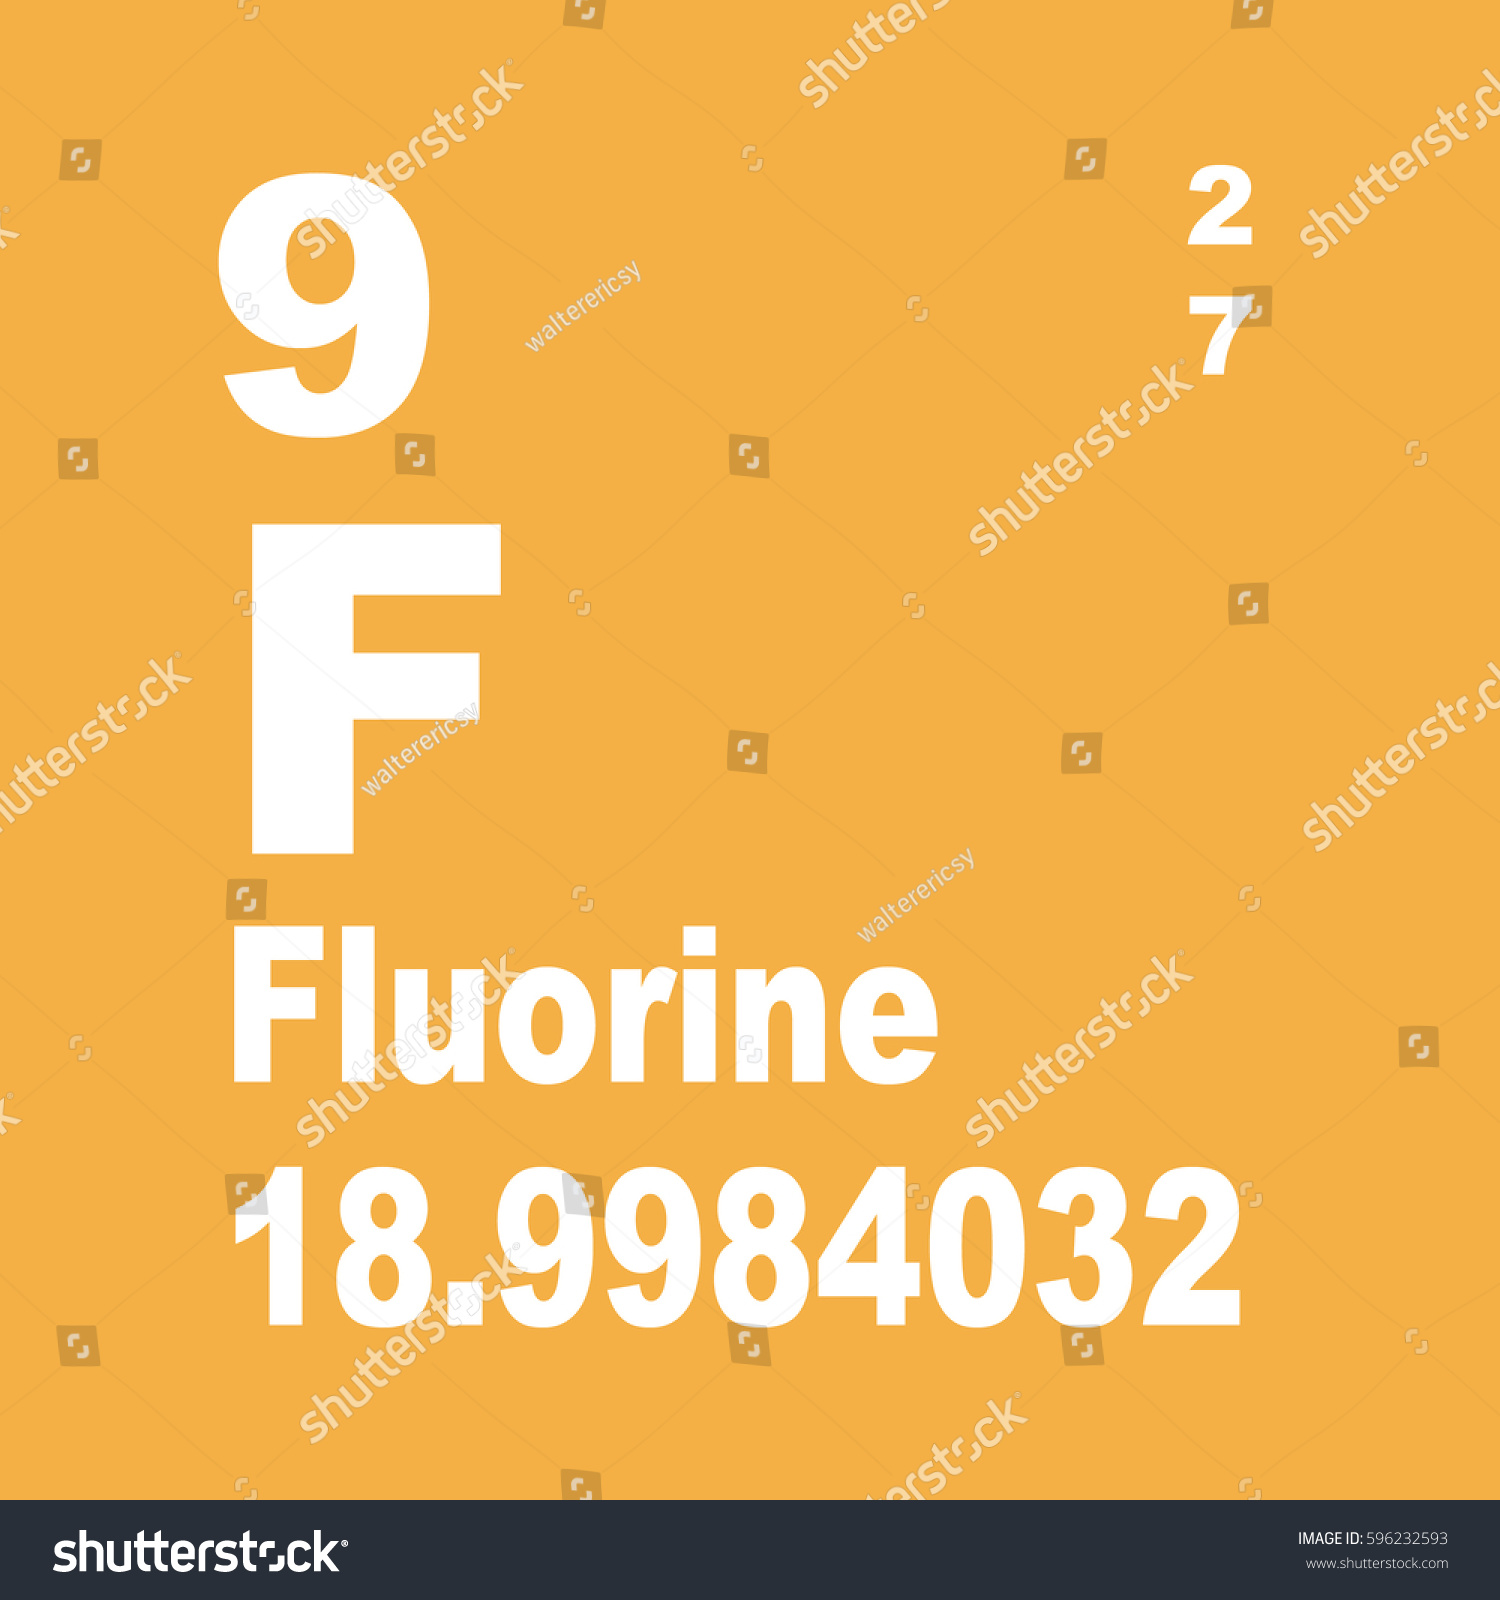 Fluorine periodic table elements stock illustration 596232593 fluorine periodic table of elements gamestrikefo Gallery